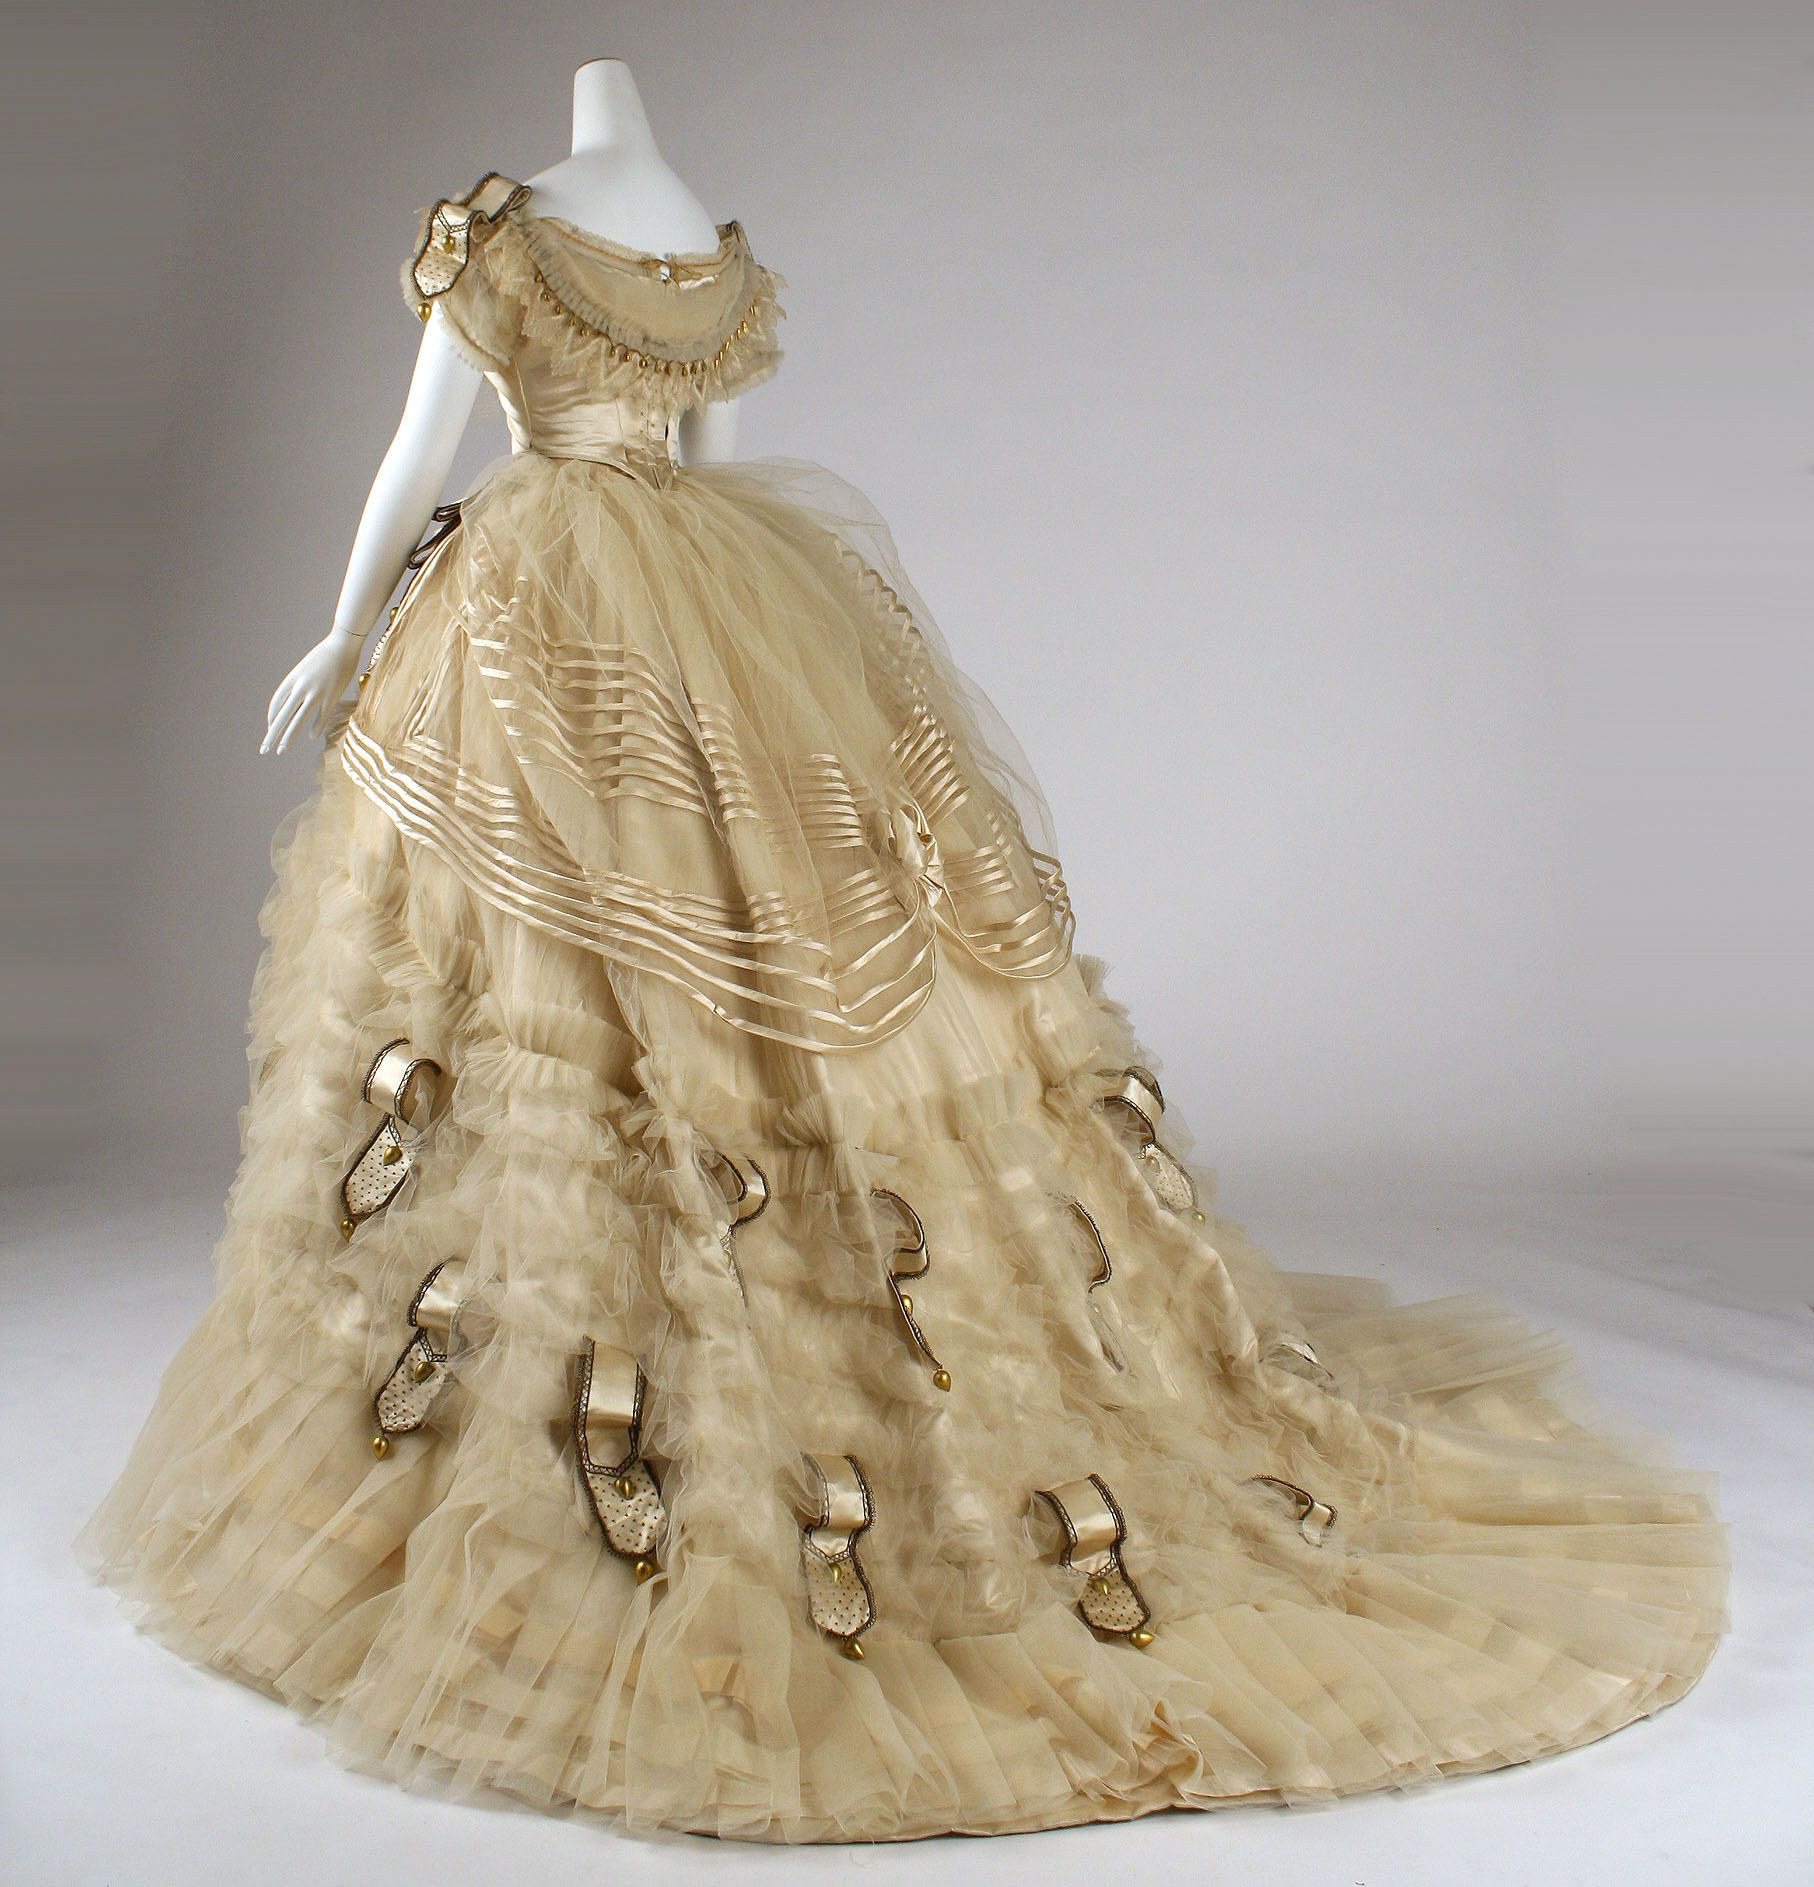 Ball gown designer emile pingat french active u date ca